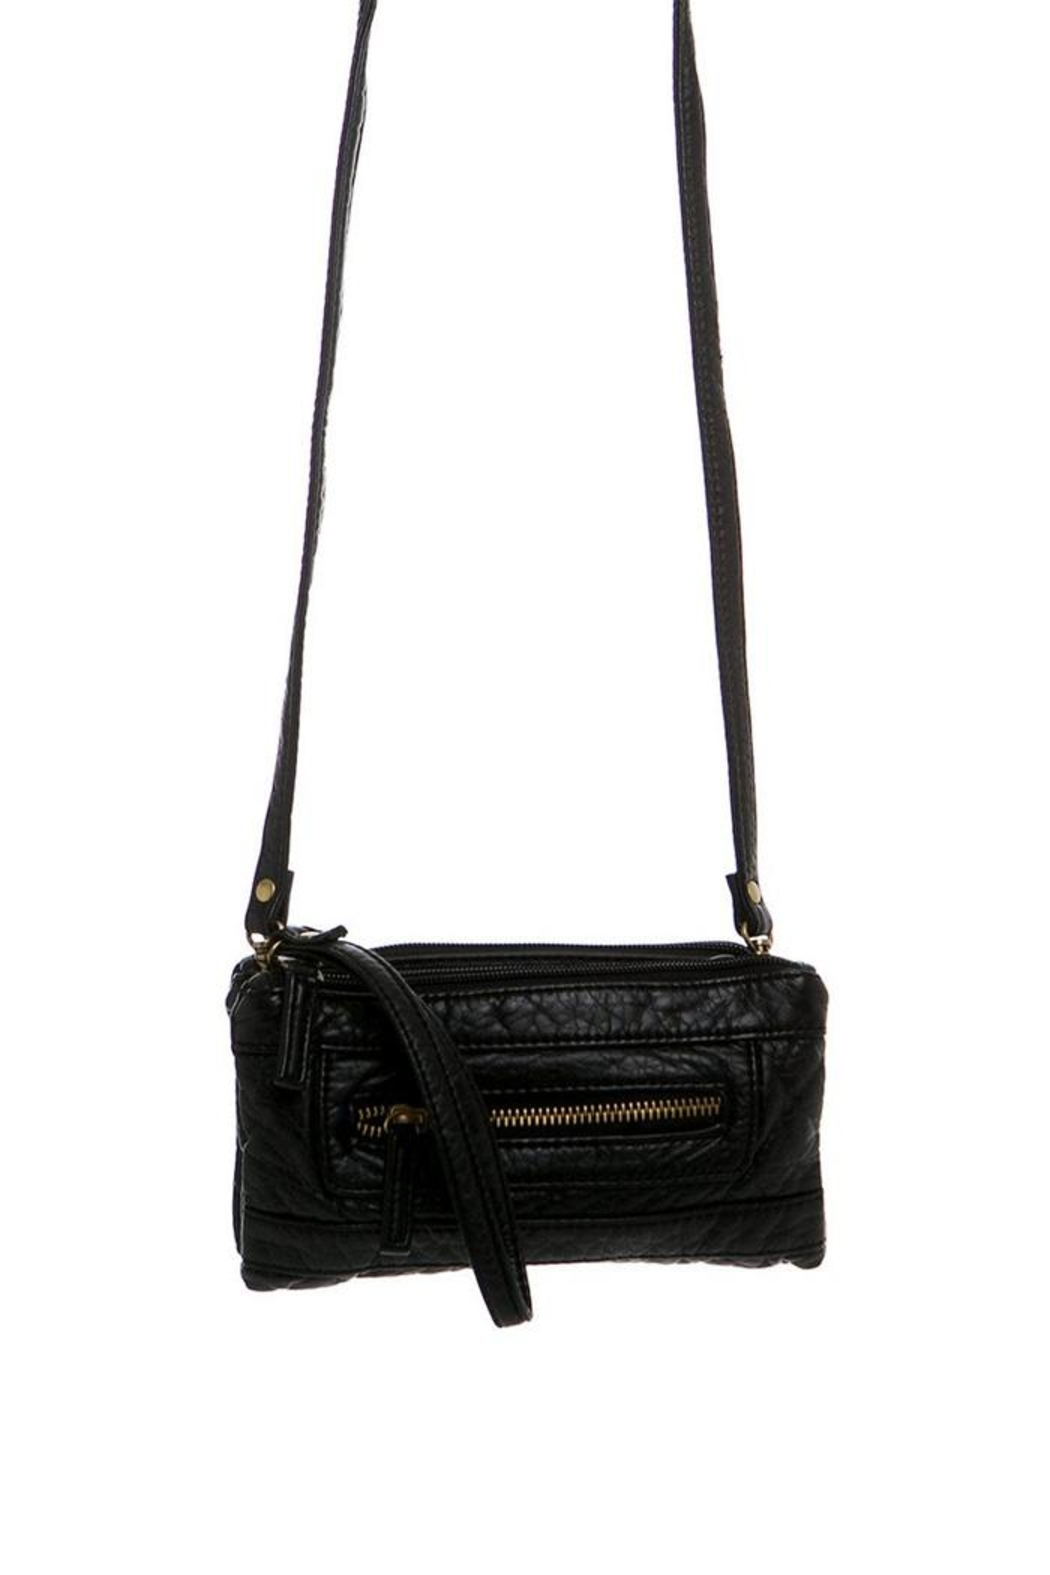 Ampere Creations Classic Three-Way Purse - Front Cropped Image